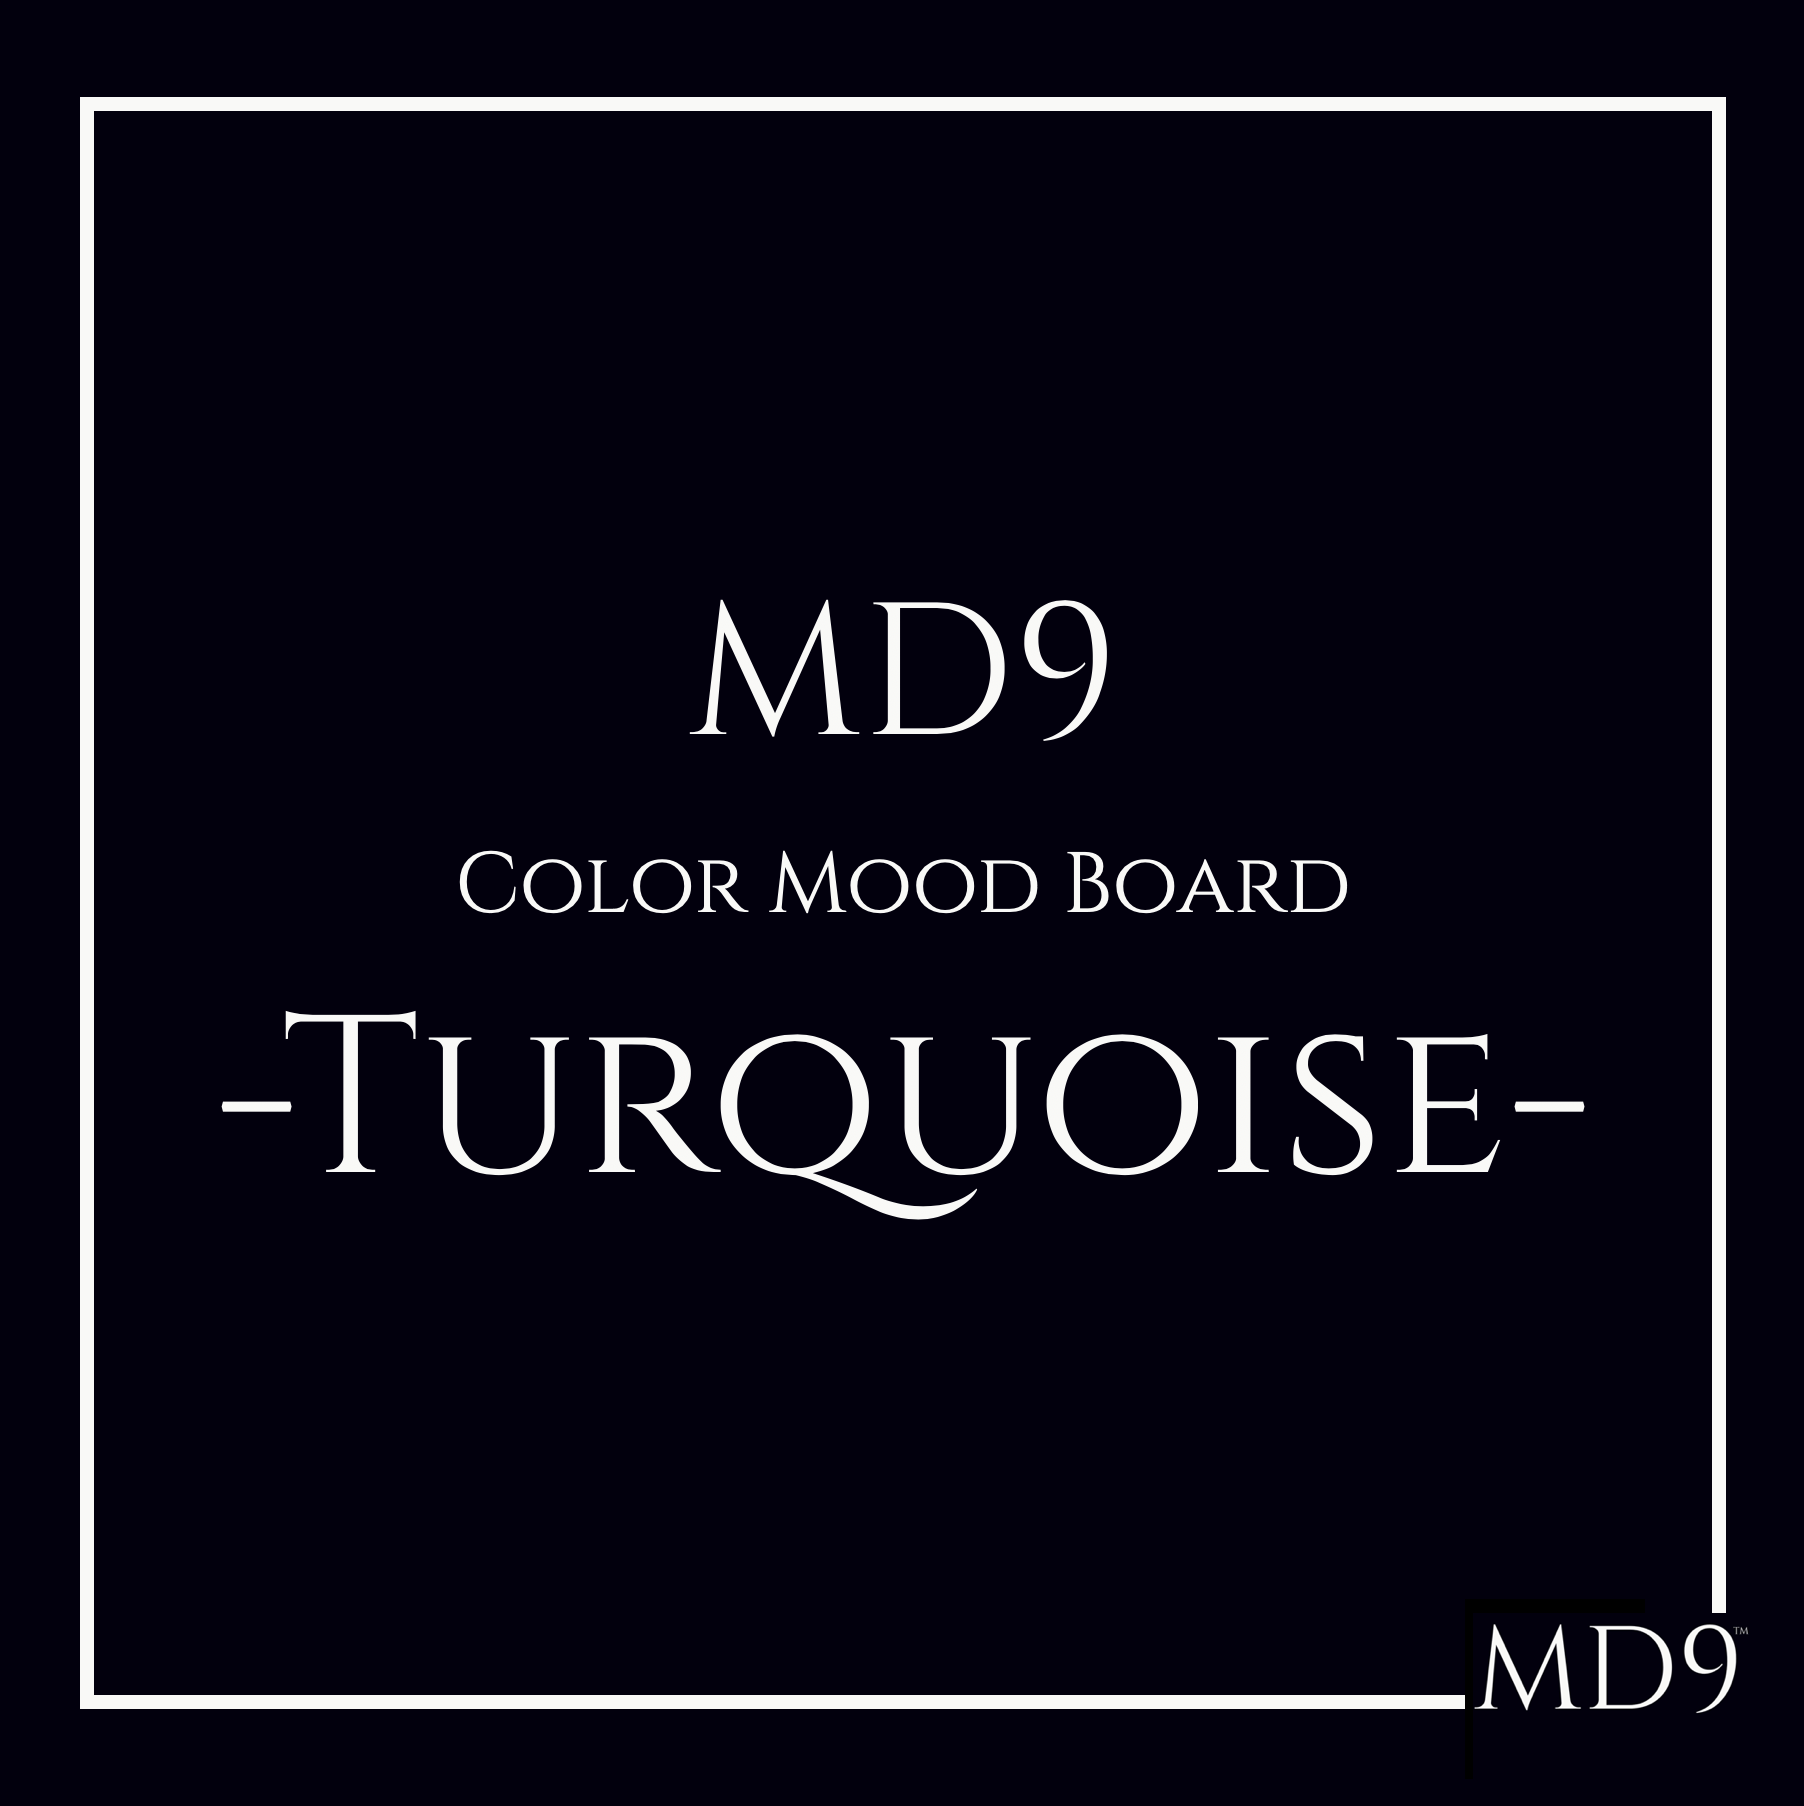 MD9's Colors Mood Board – Turquoise